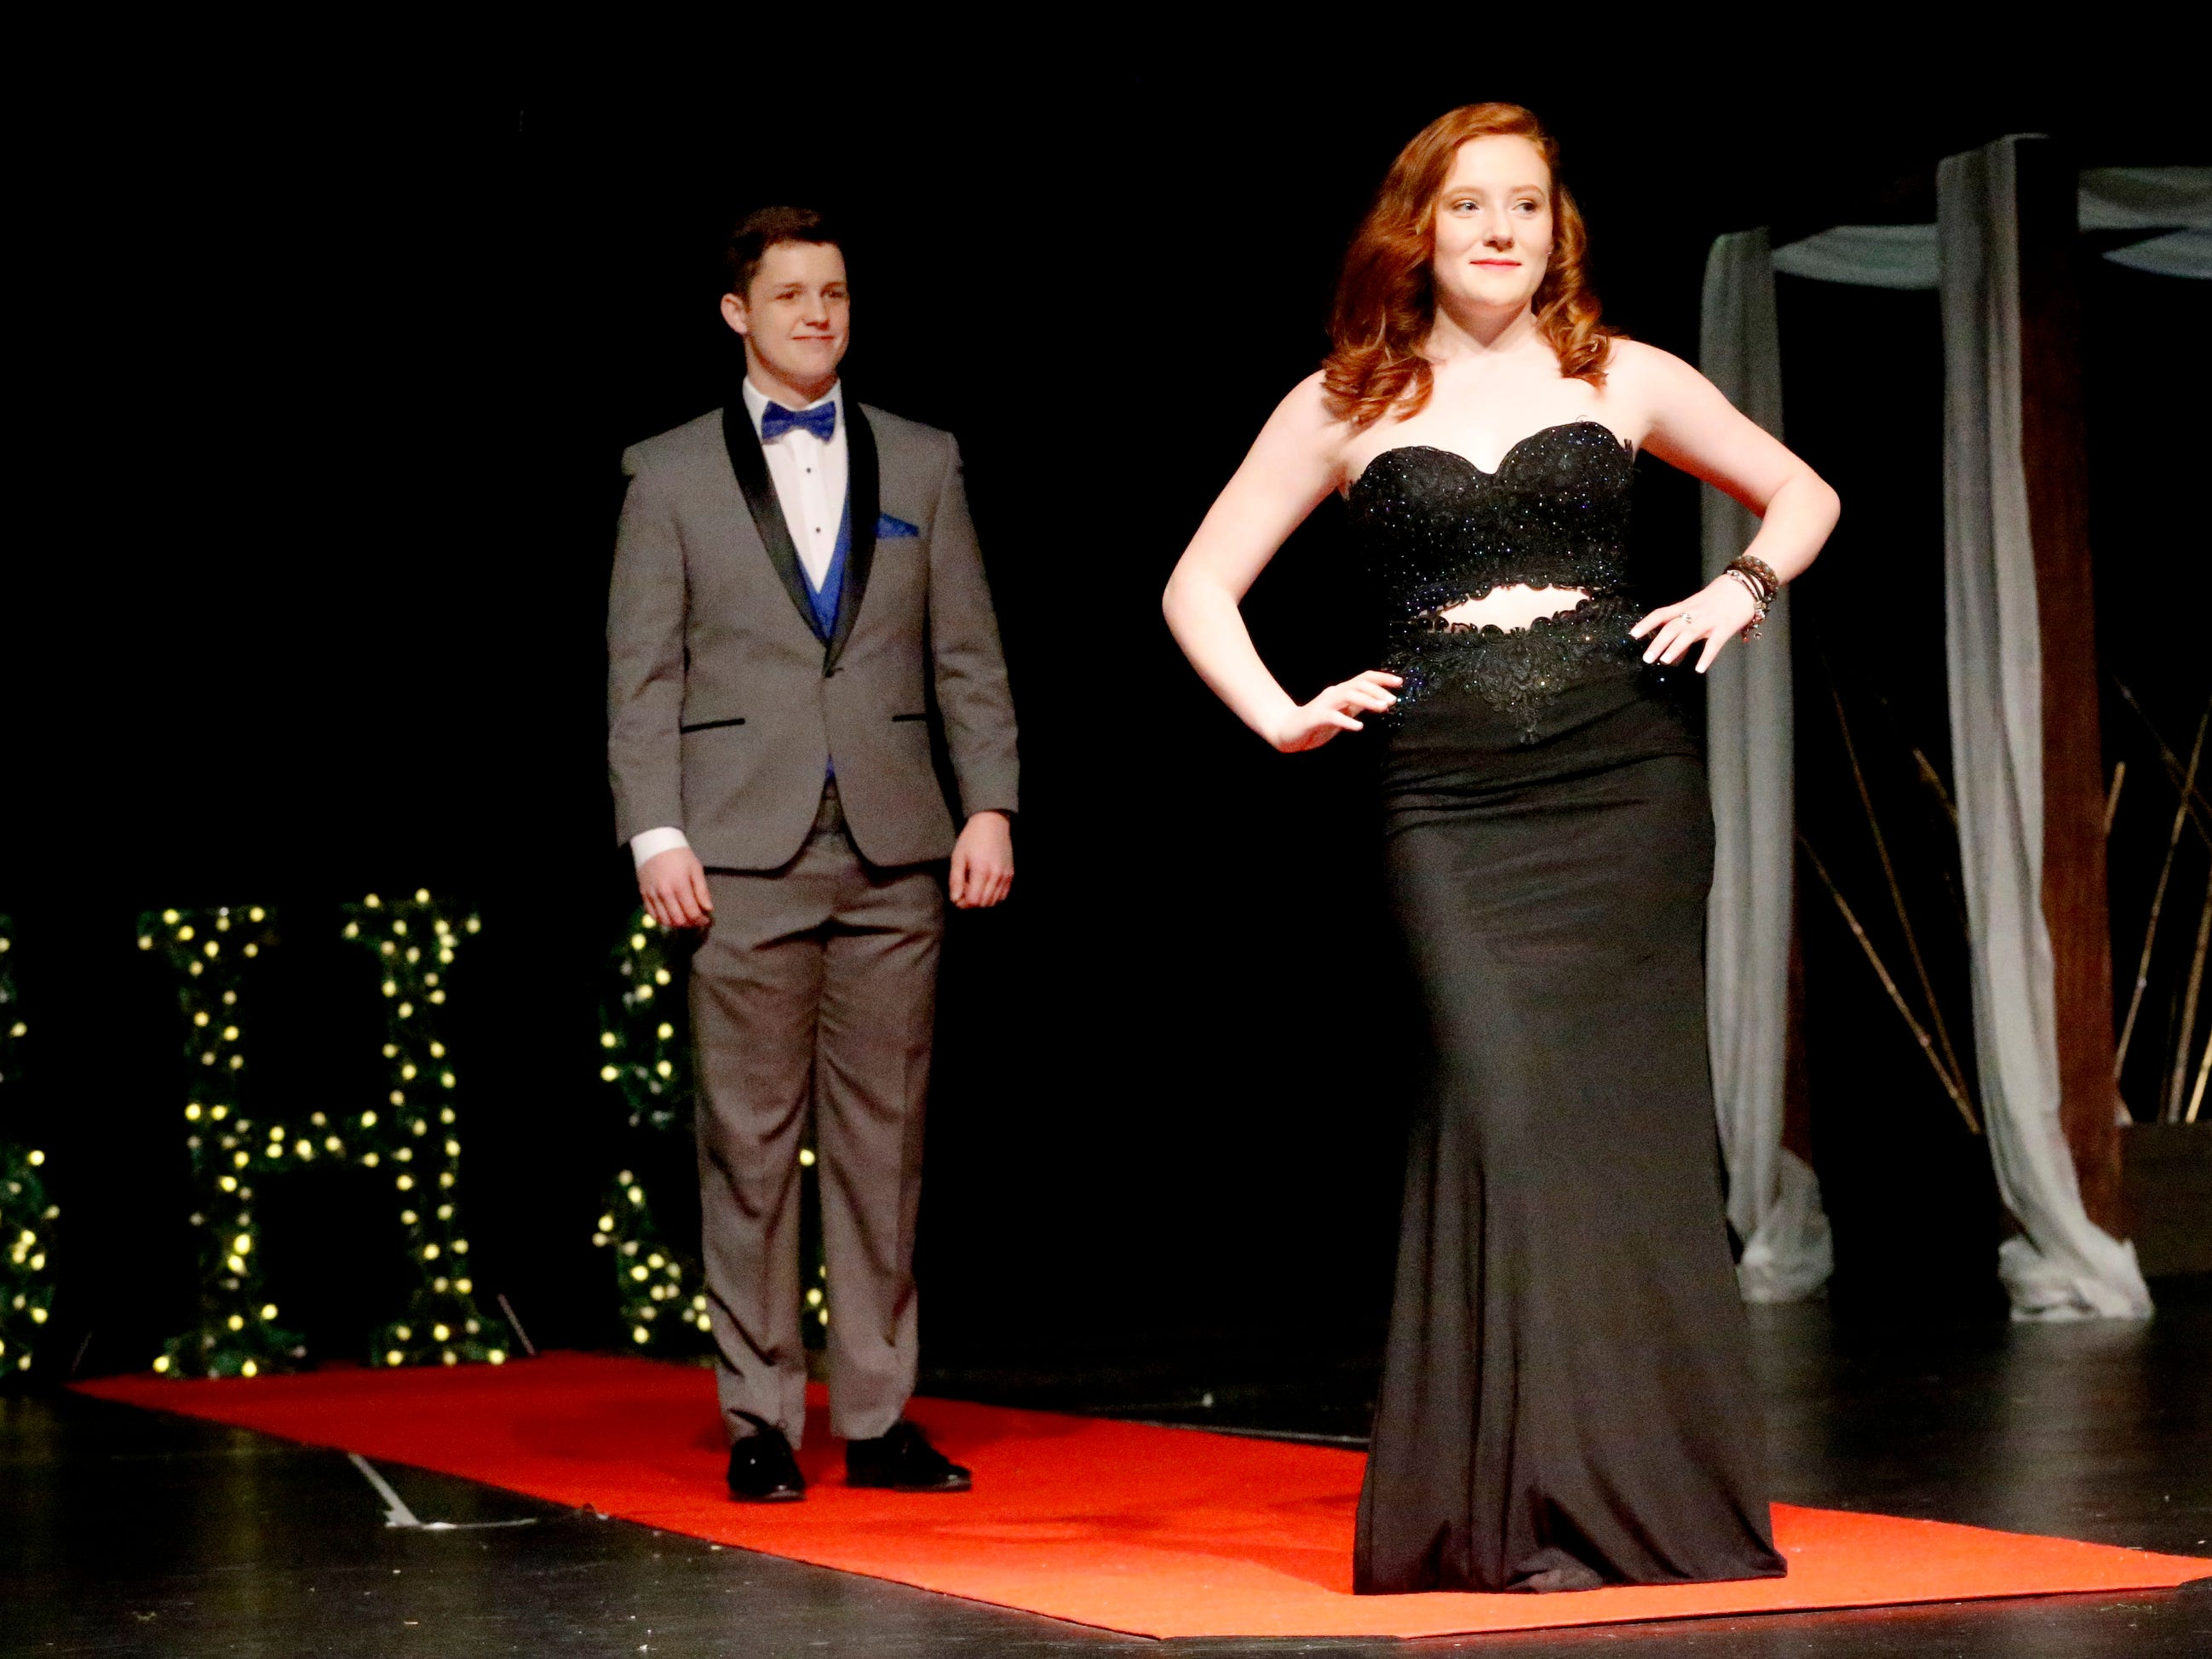 Lauren Meyer steps forward to show off her dress as Andrew Bruce waits to show off his tux during the Siegel Prom Fashion show on Thursday, Feb. 14, 2019.